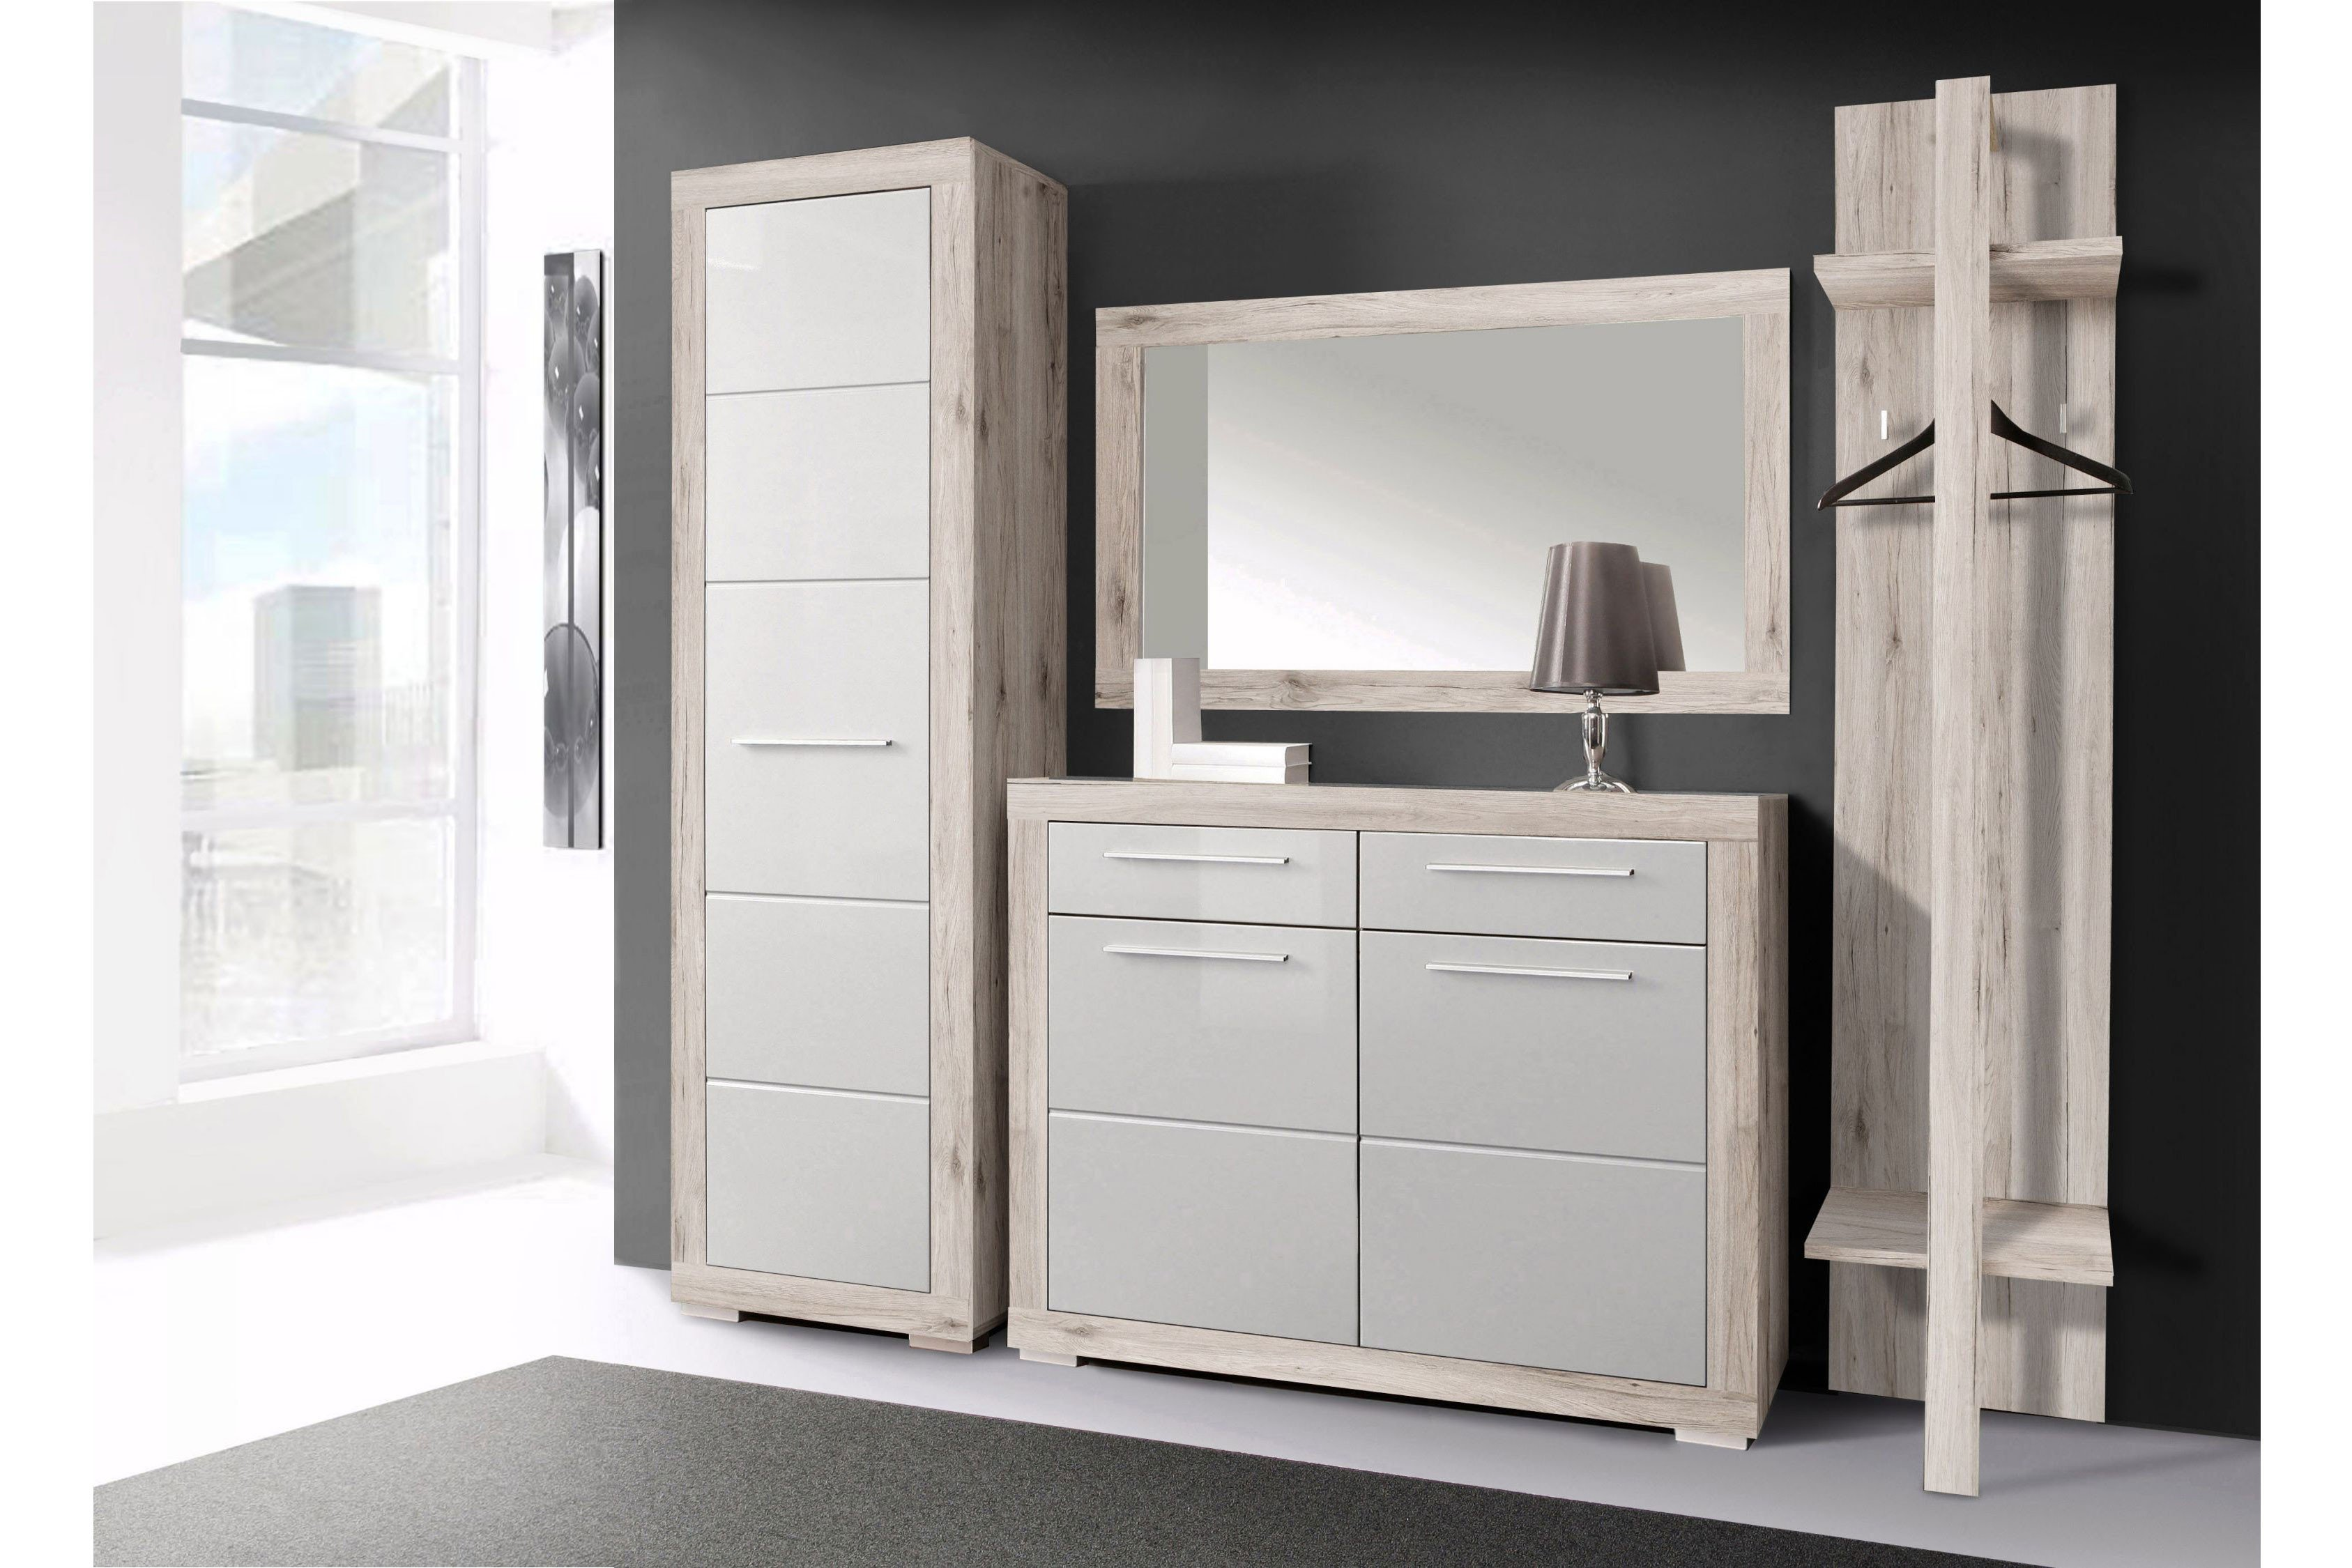 garderob weiss interi rinspiration och id er f r hemdesign. Black Bedroom Furniture Sets. Home Design Ideas